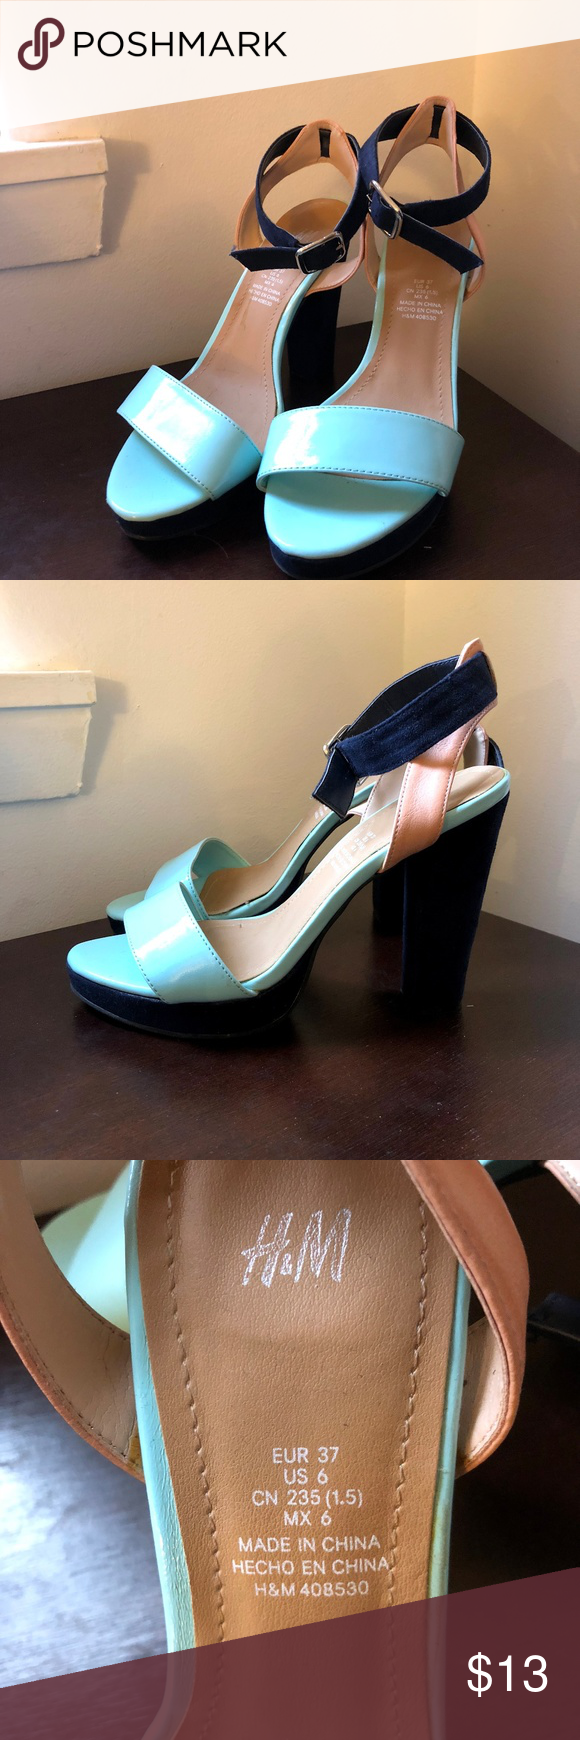 Mint And Navy Blue Heels Cute Colorful Heels H M Shoes Heels Navy Blue Heels Heels Colorful Heels